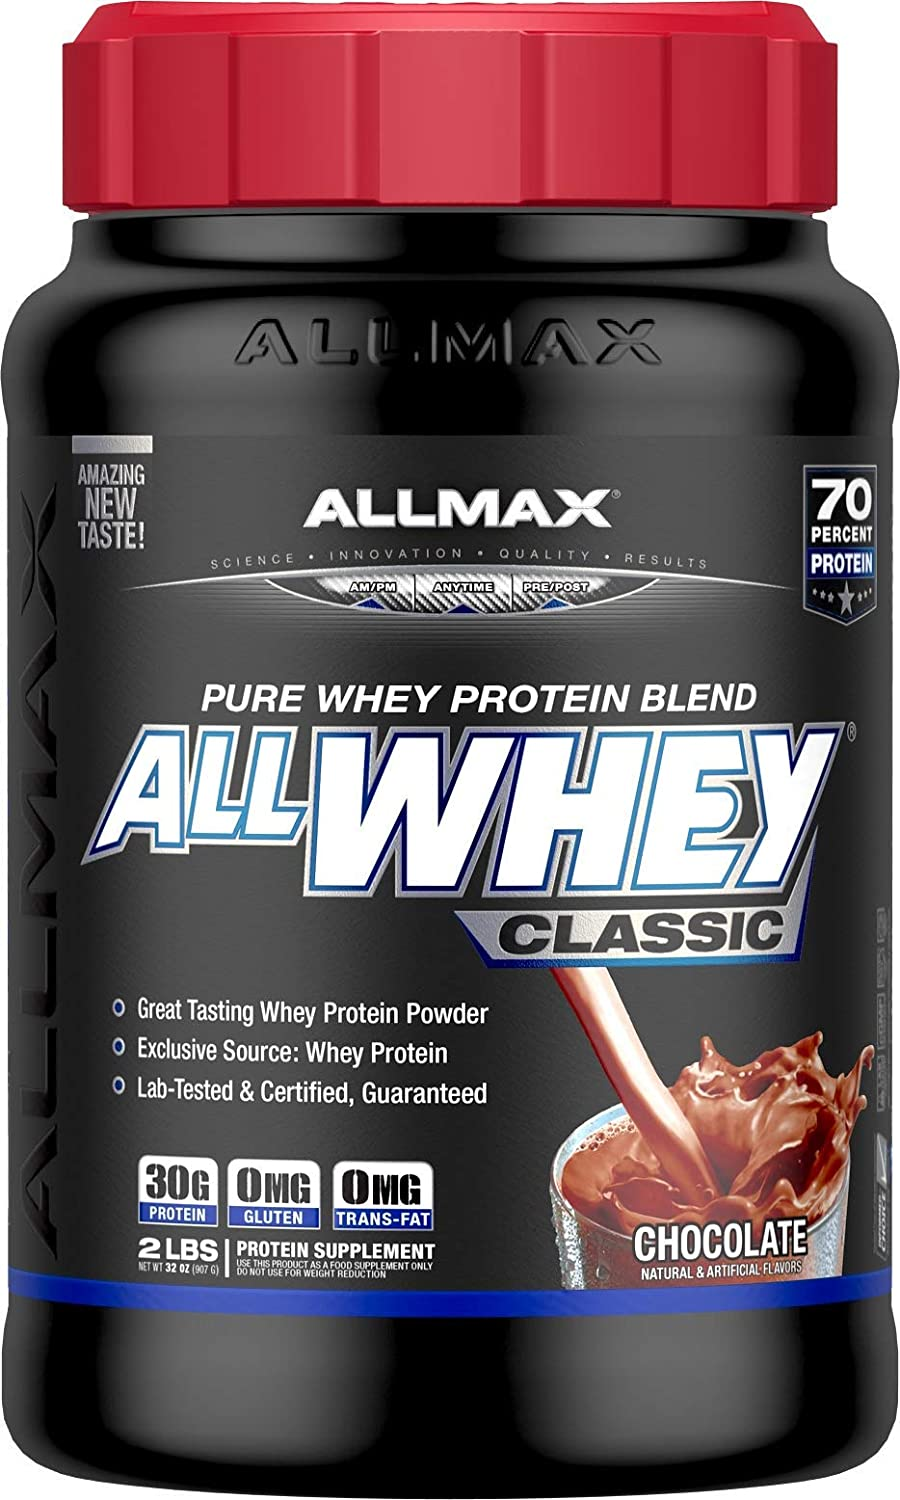 ALLMAX Nutrition AllWhey Classic 100 Whey Protein, Chocolate, 2 lbs